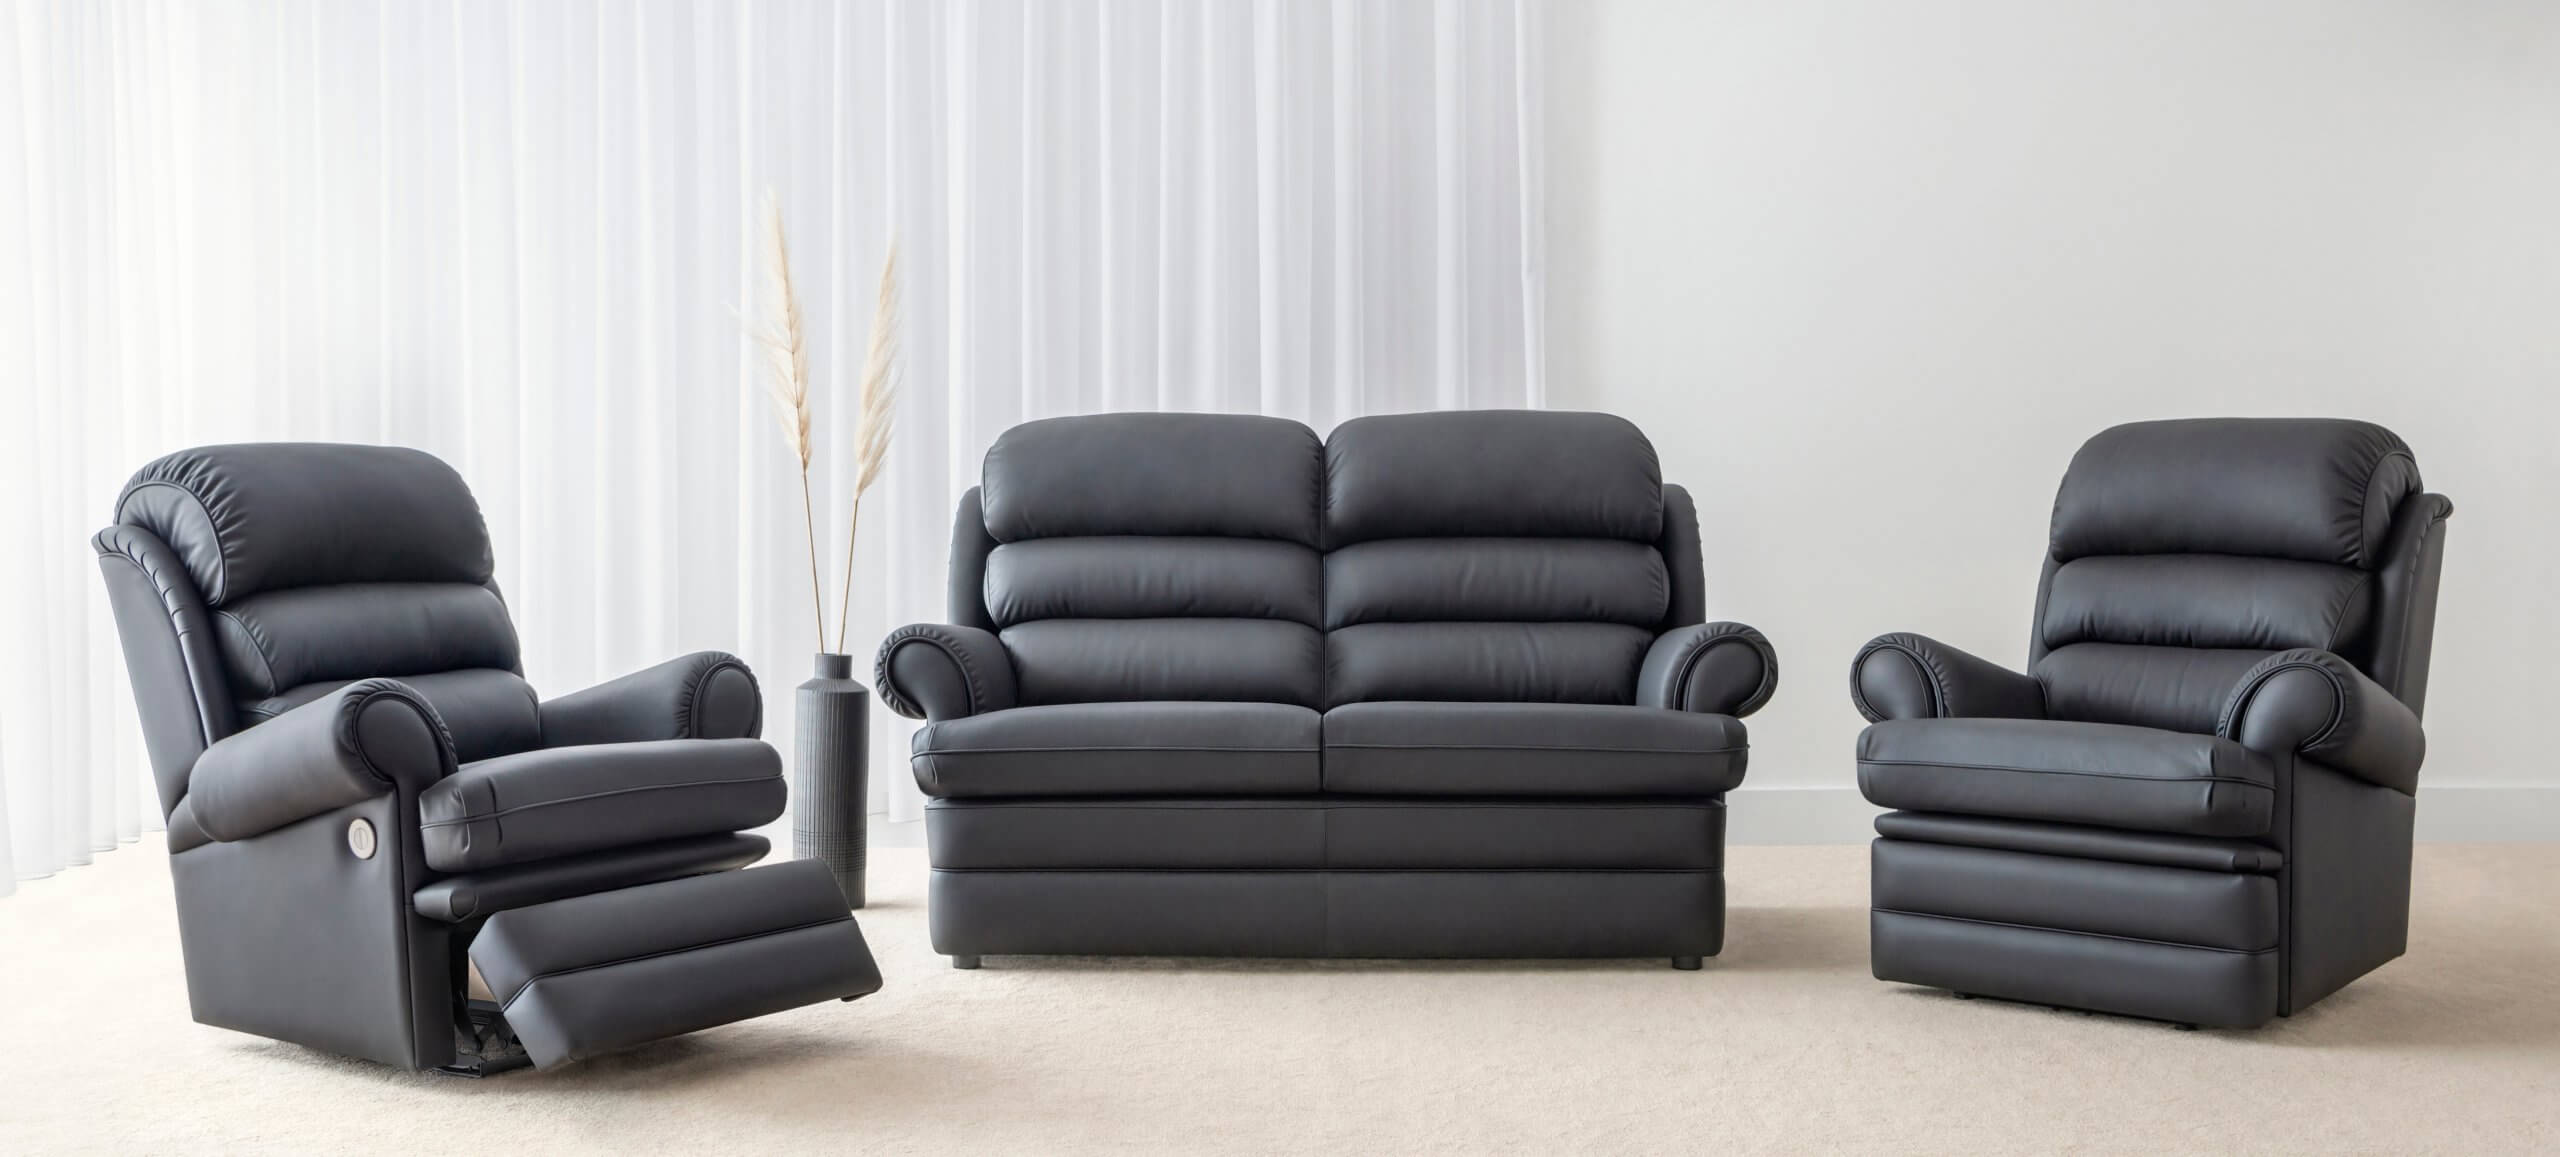 Leather Lounge Suite with electric recliners